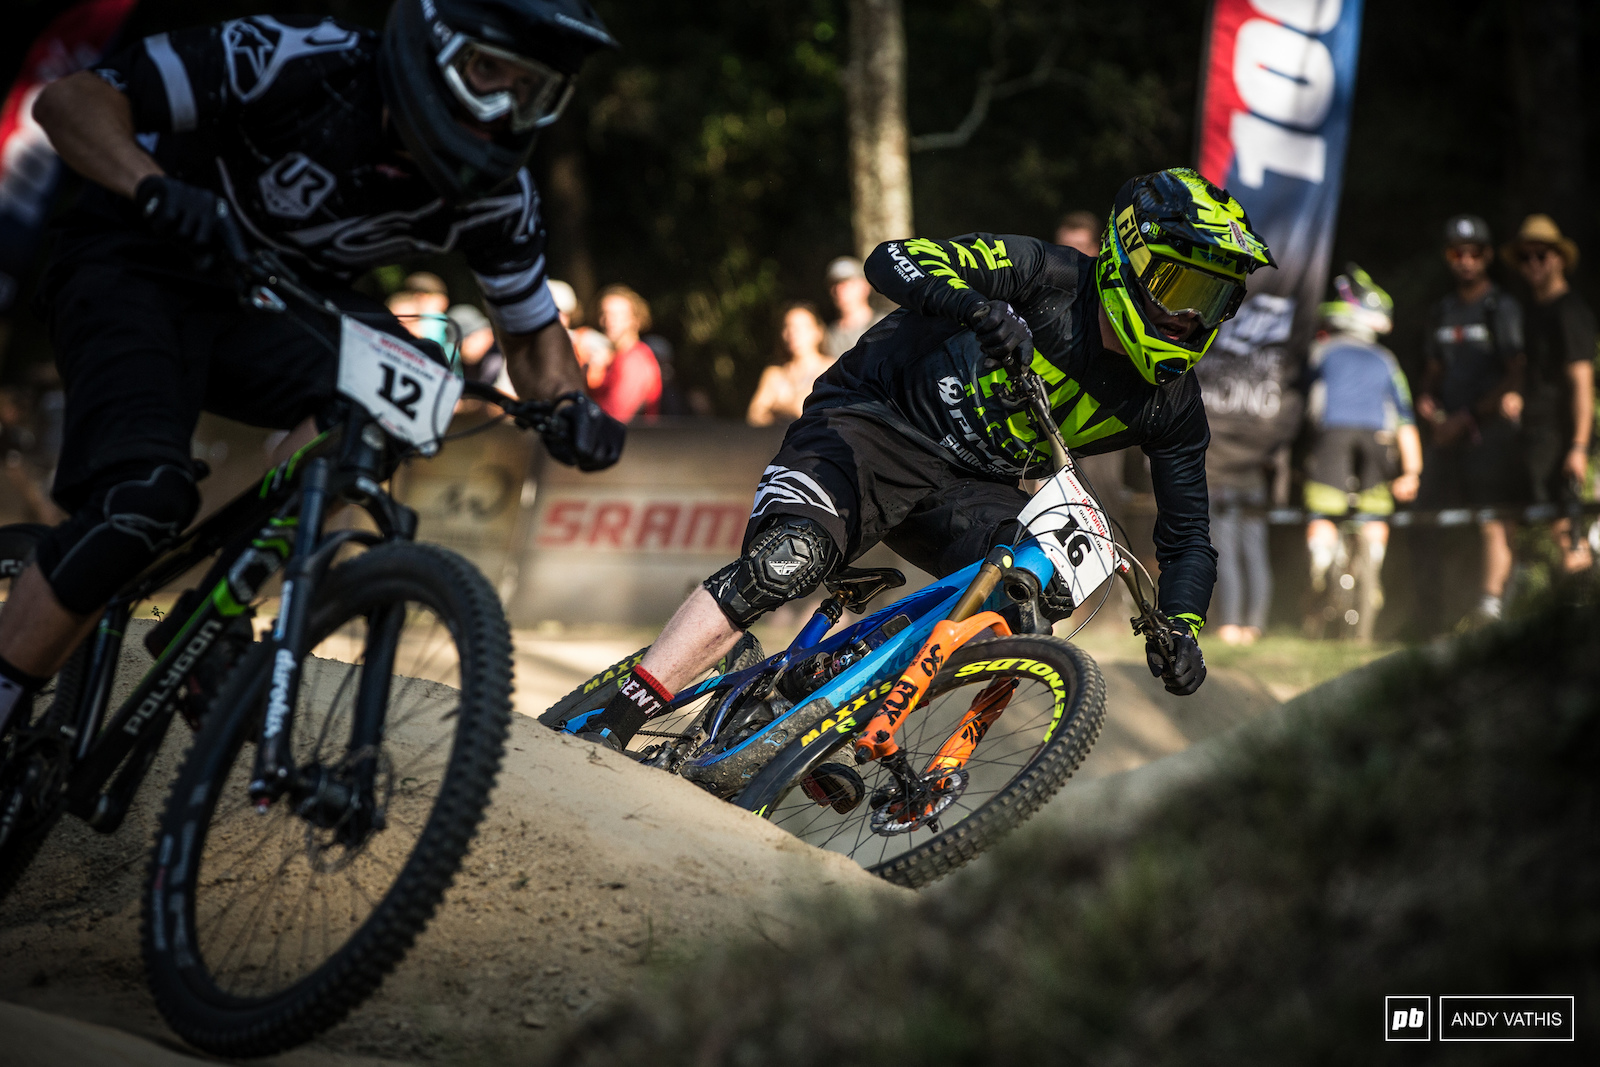 The beauty of dual slalom is that it attracts riders from different disciplines and backgrounds.